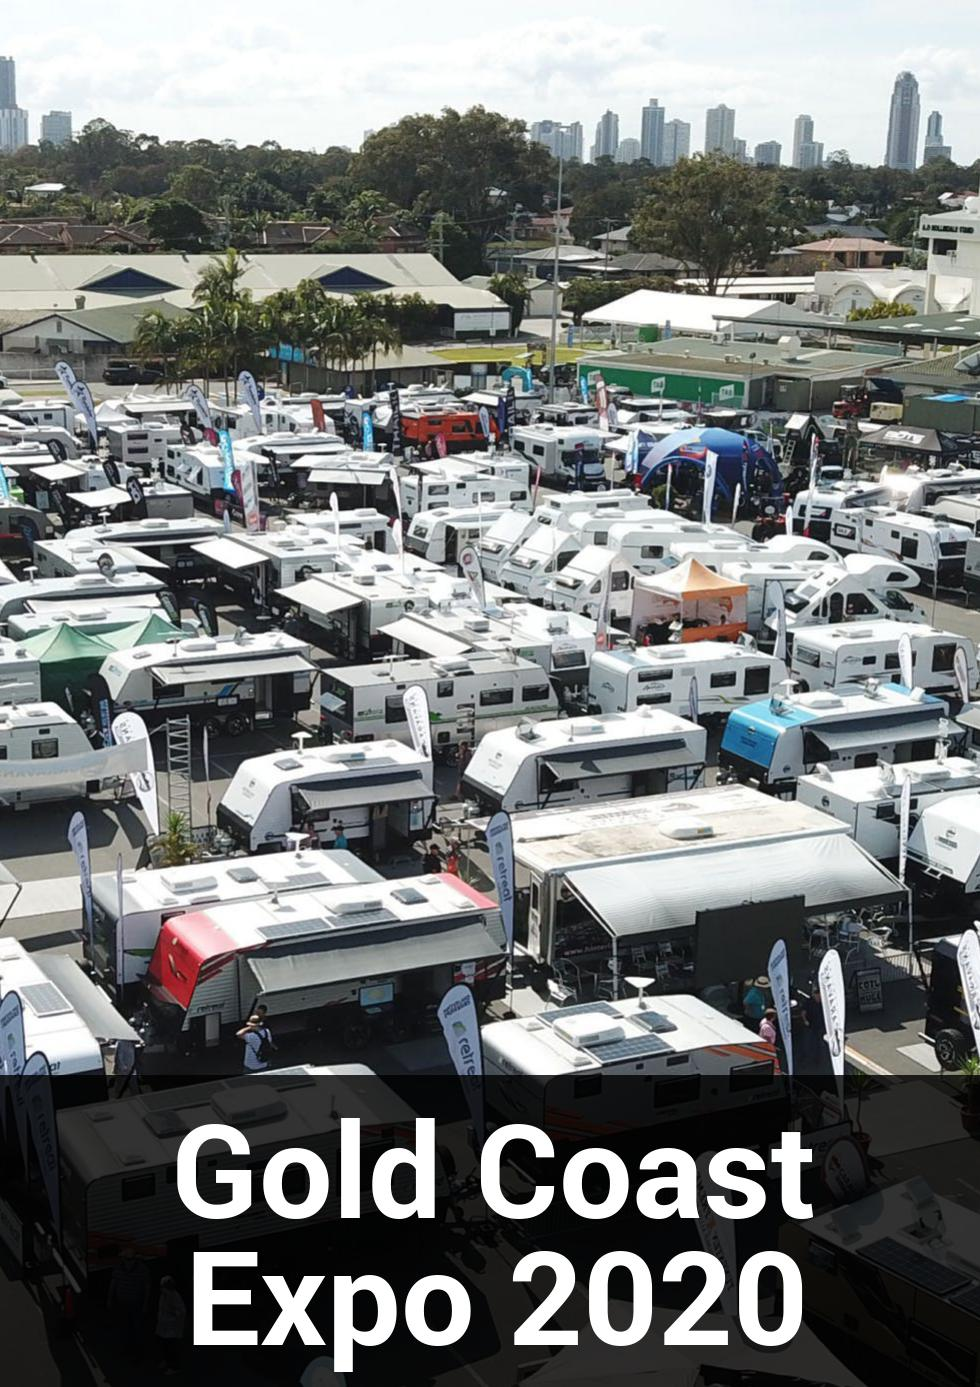 Gold Coast Expo 2020 at Gold Coast Turf Club